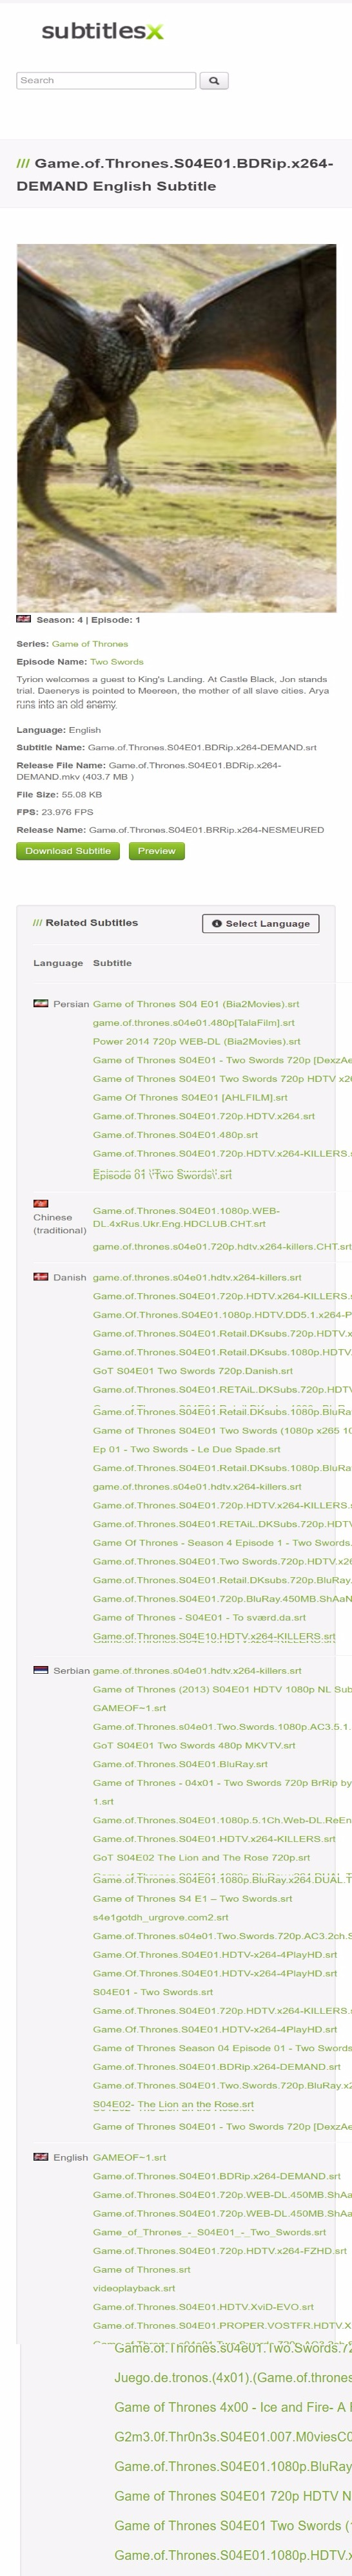 Game of Thrones - Histories and Lore - Season 1 Complete ...